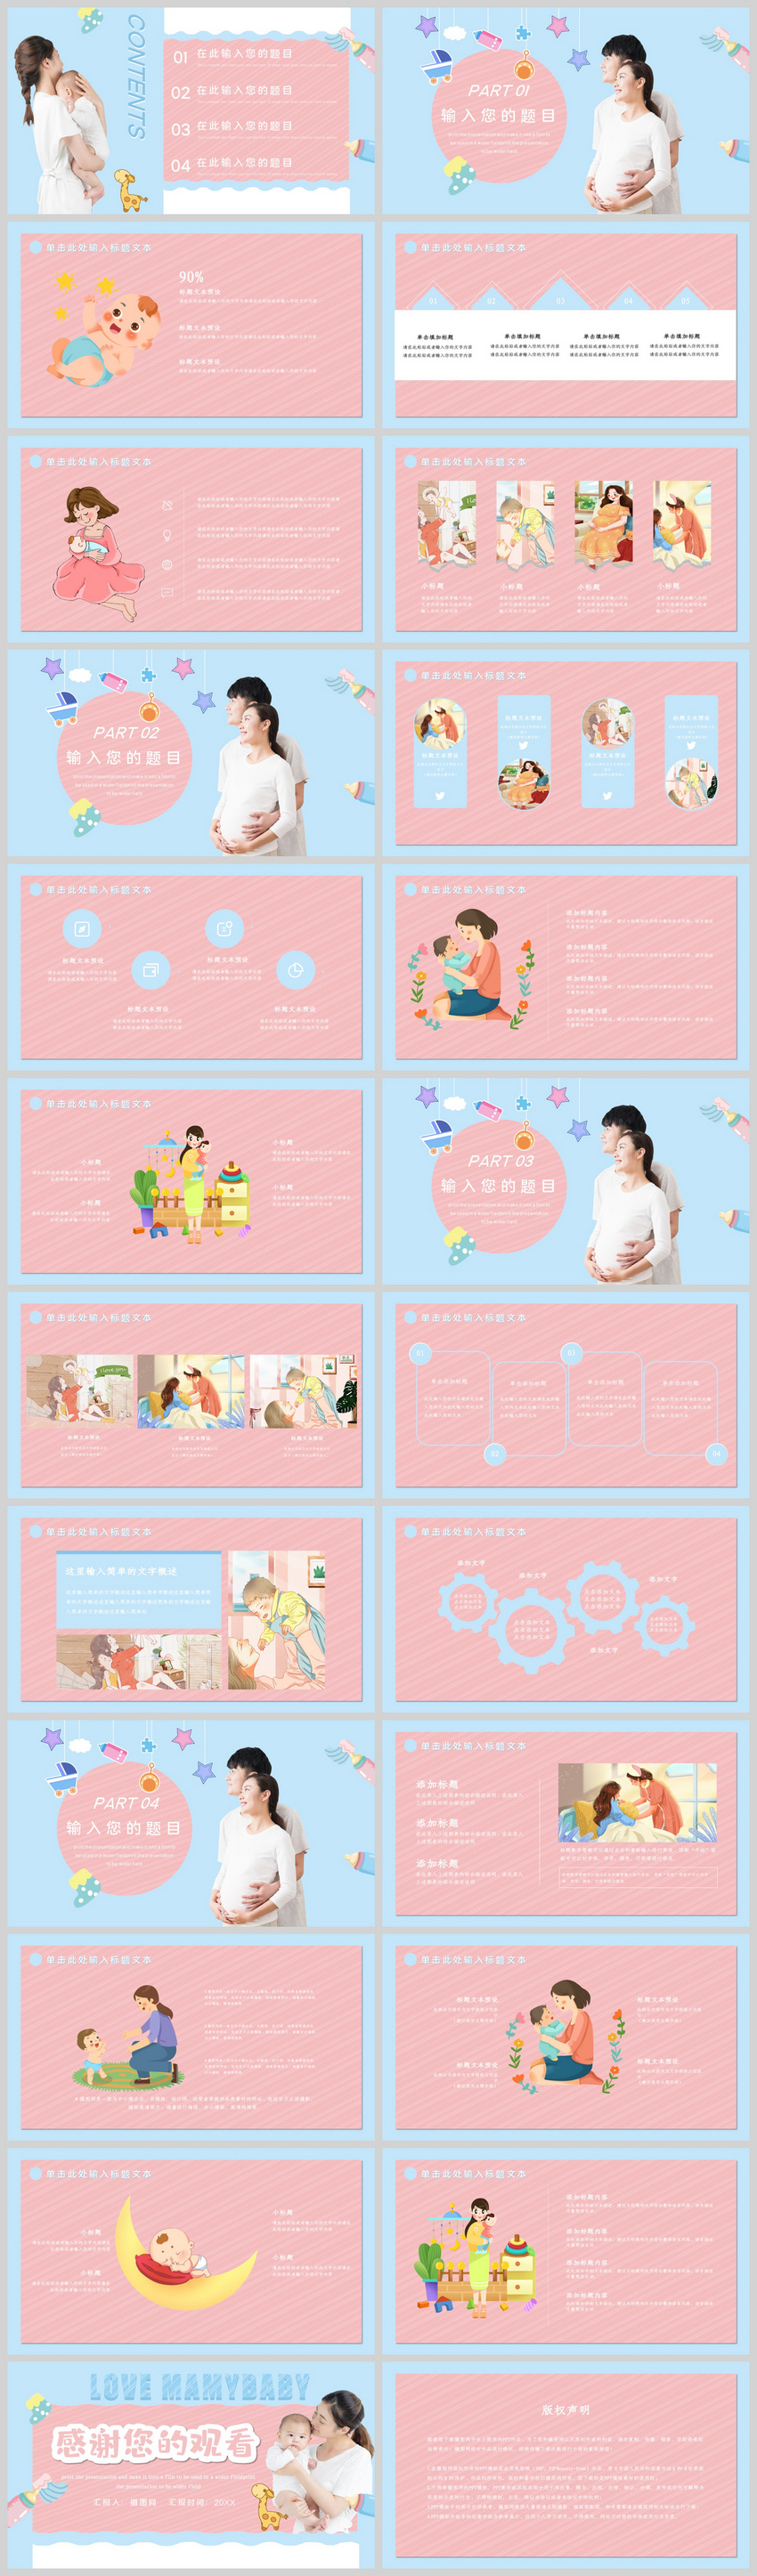 Pink Baby Education Ppt Template Powerpoint Templete Ppt Free Download 401732158 Lovepik Com